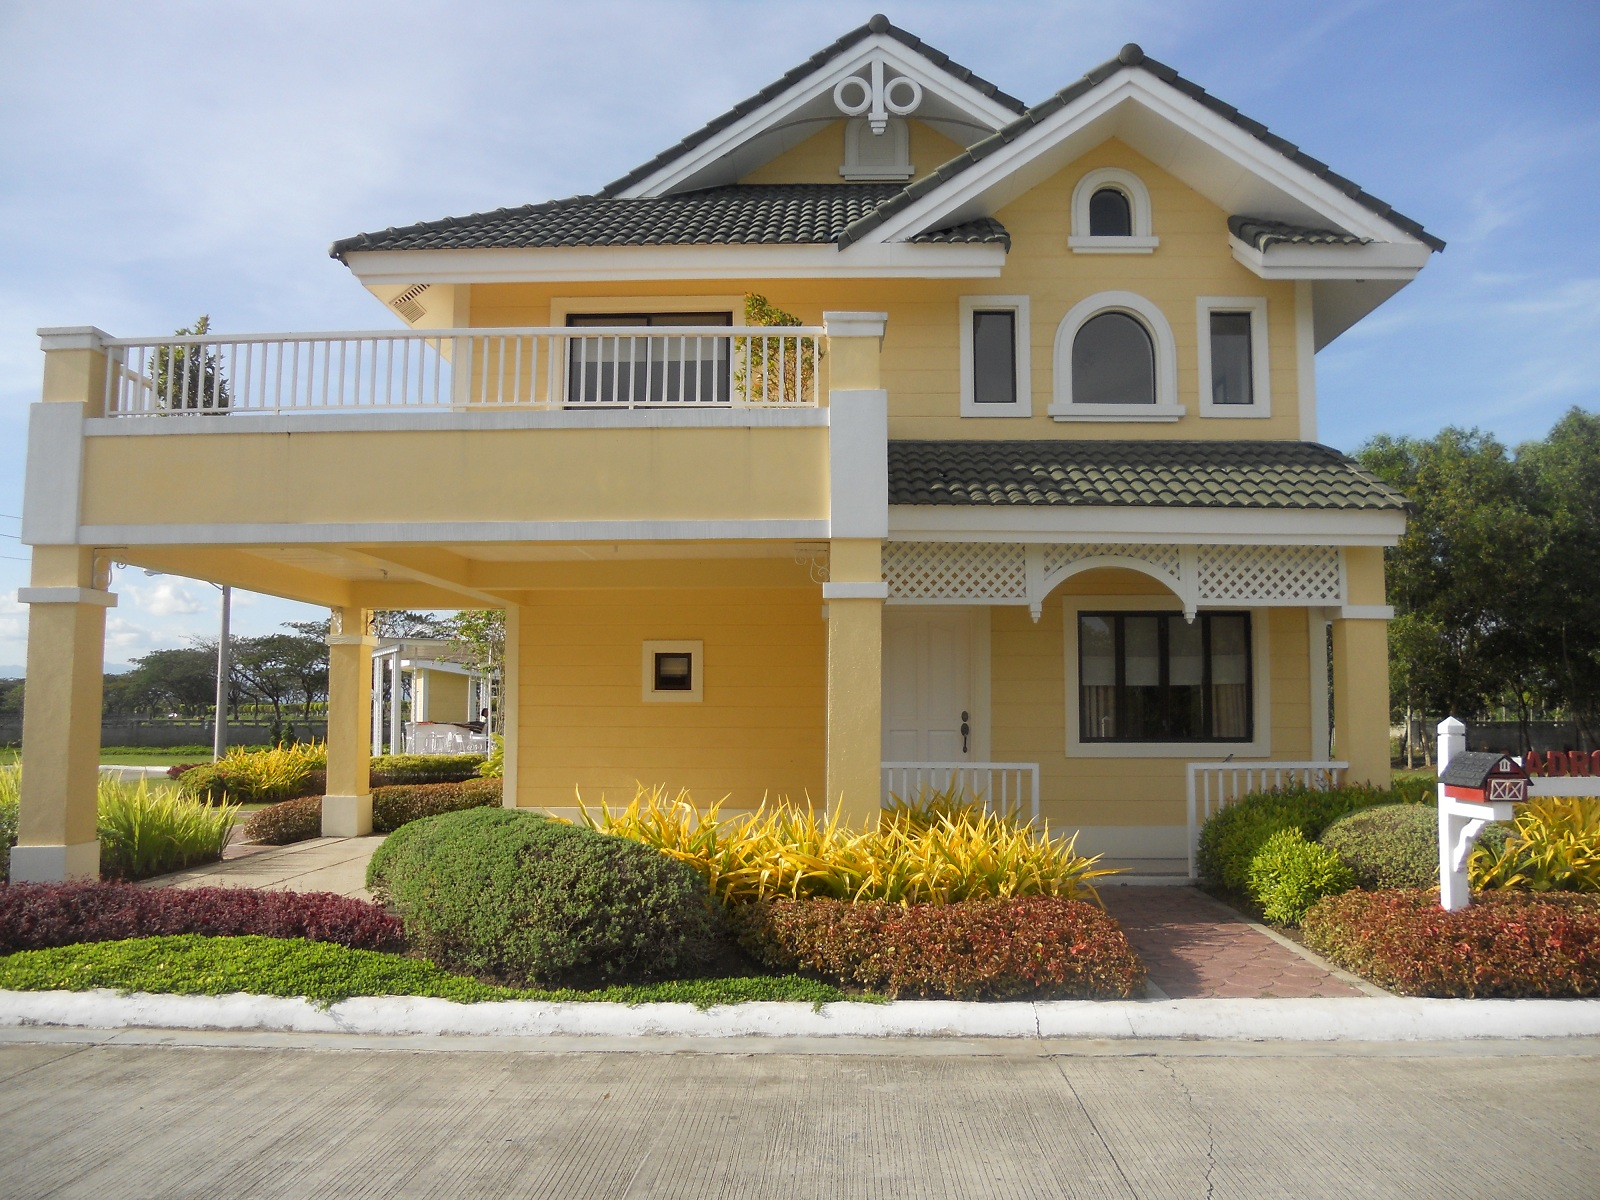 Savannah crest iloilo within savannah iloilo by camella for City home plans